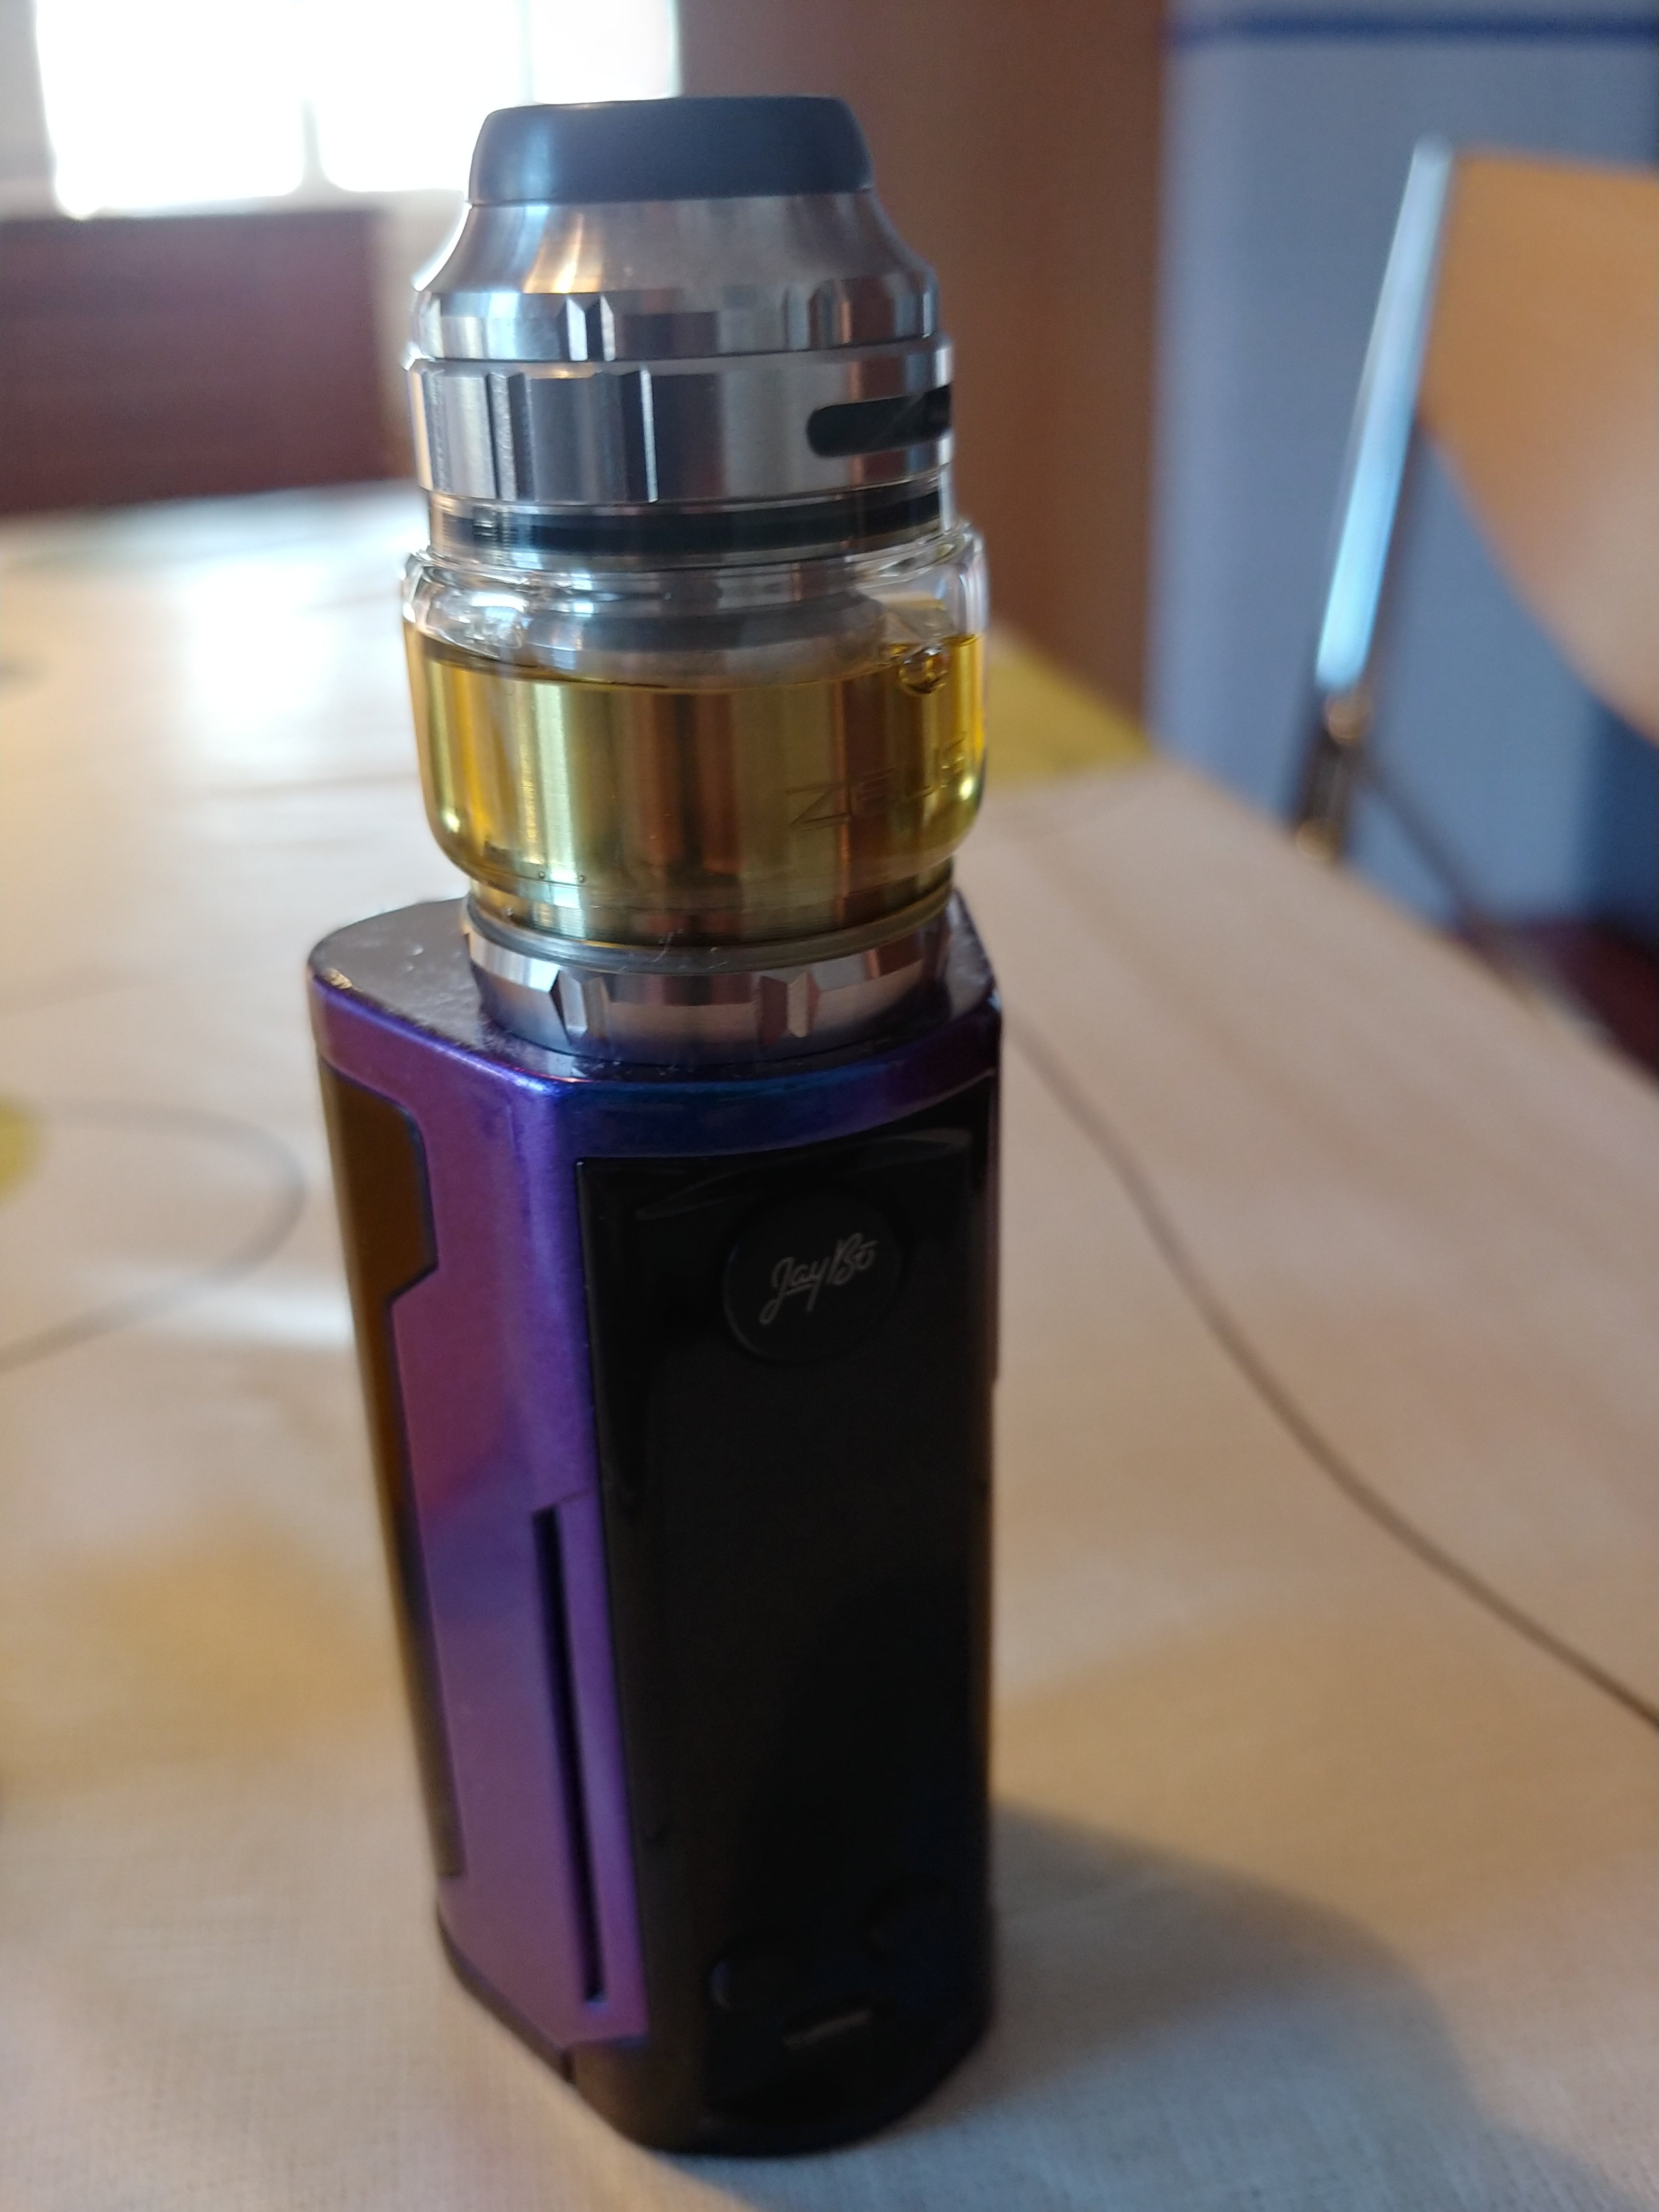 Vape-Fi | Page 193 | Headphone Reviews and Discussion - Head